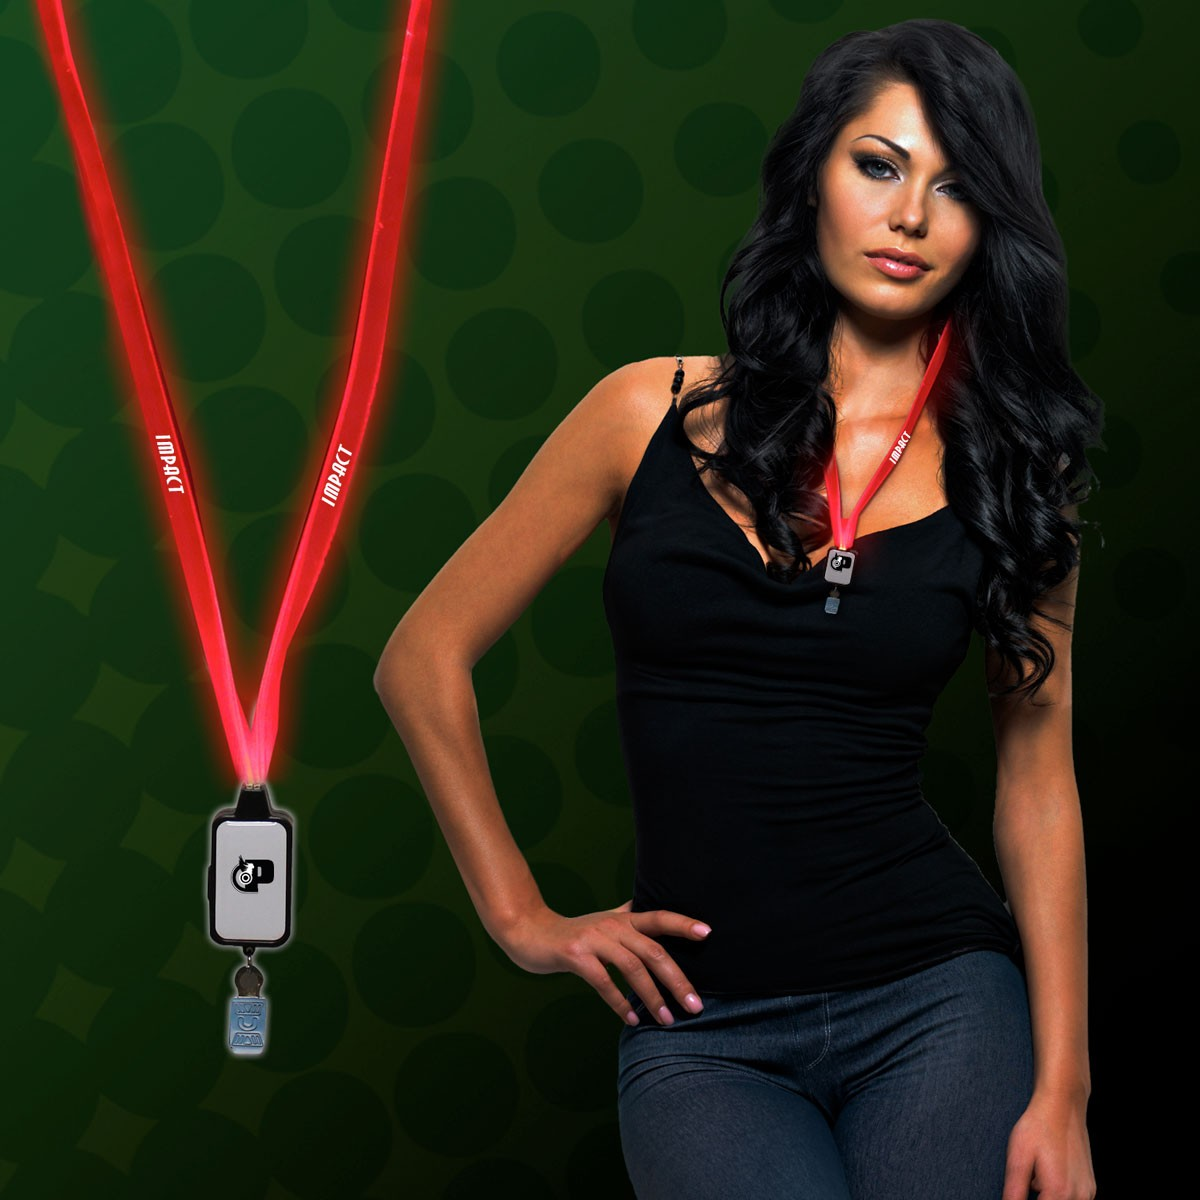 RED LED LANYARD WBADGE CLIP